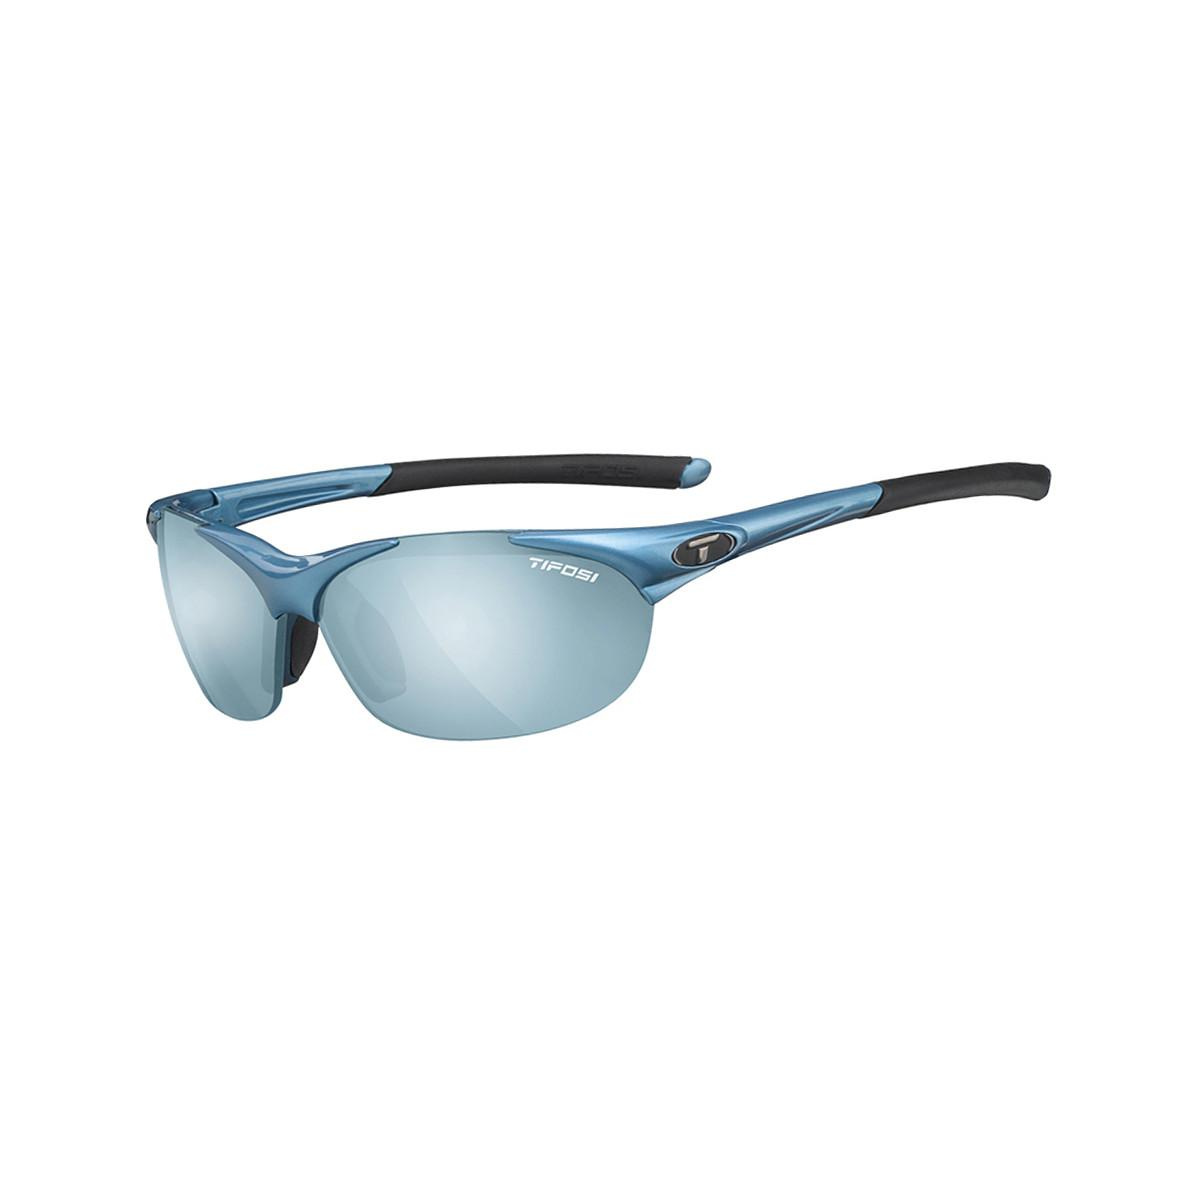 90f46f56a2 Lyst - Tifosi Optics Wisp Sunglasses in Blue